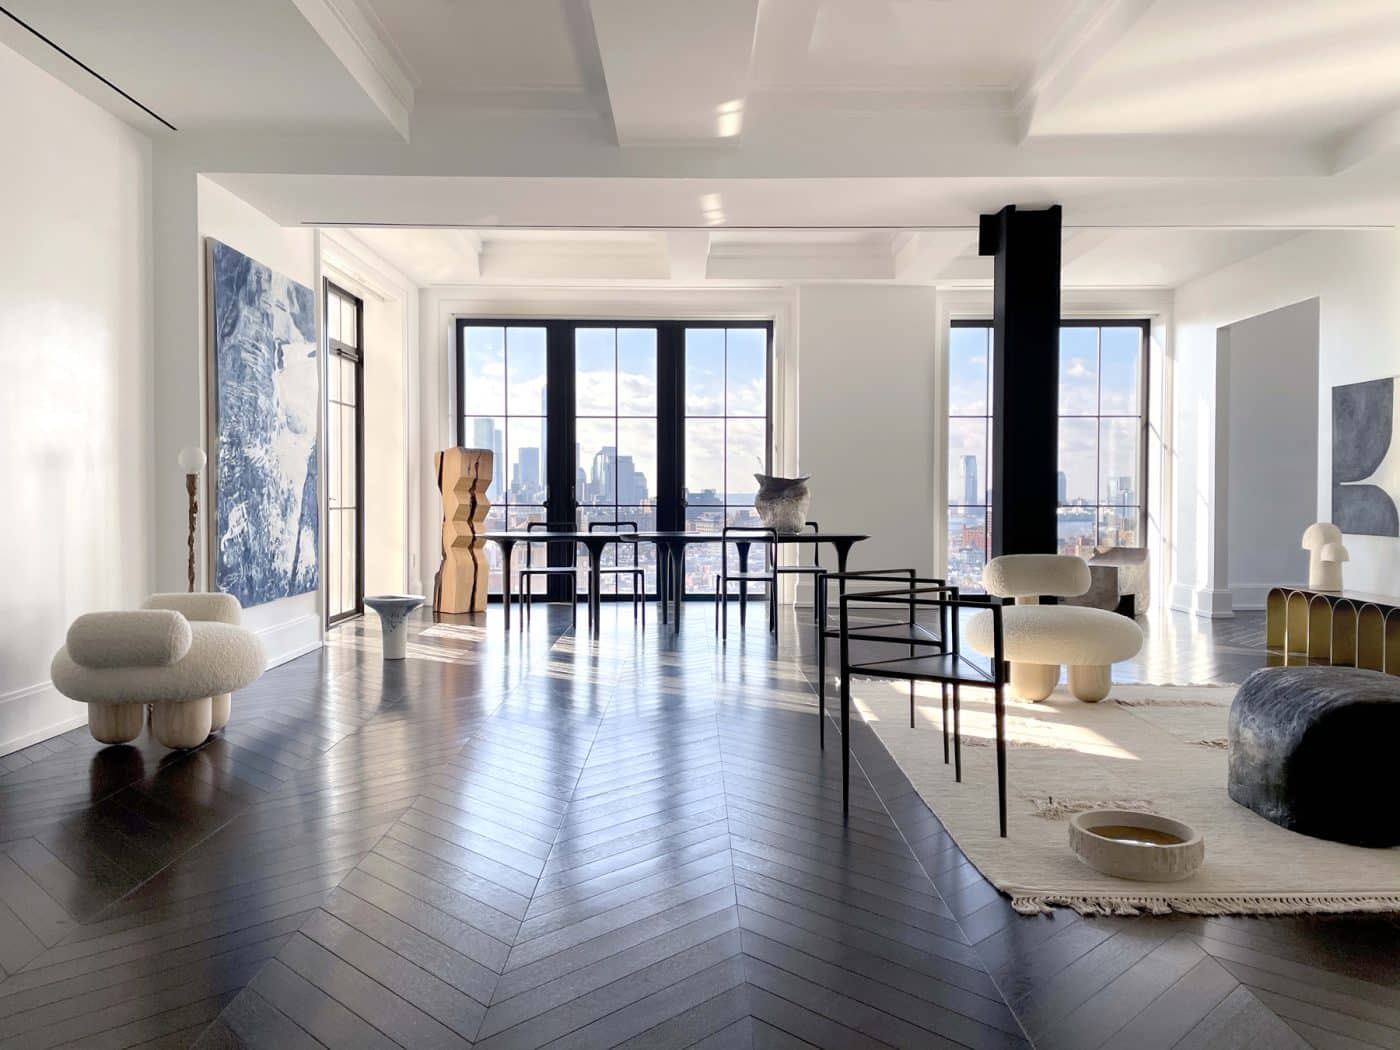 Galerie Philia's show of contemporary furniture in a duplex apartment in New York's Walker Tower